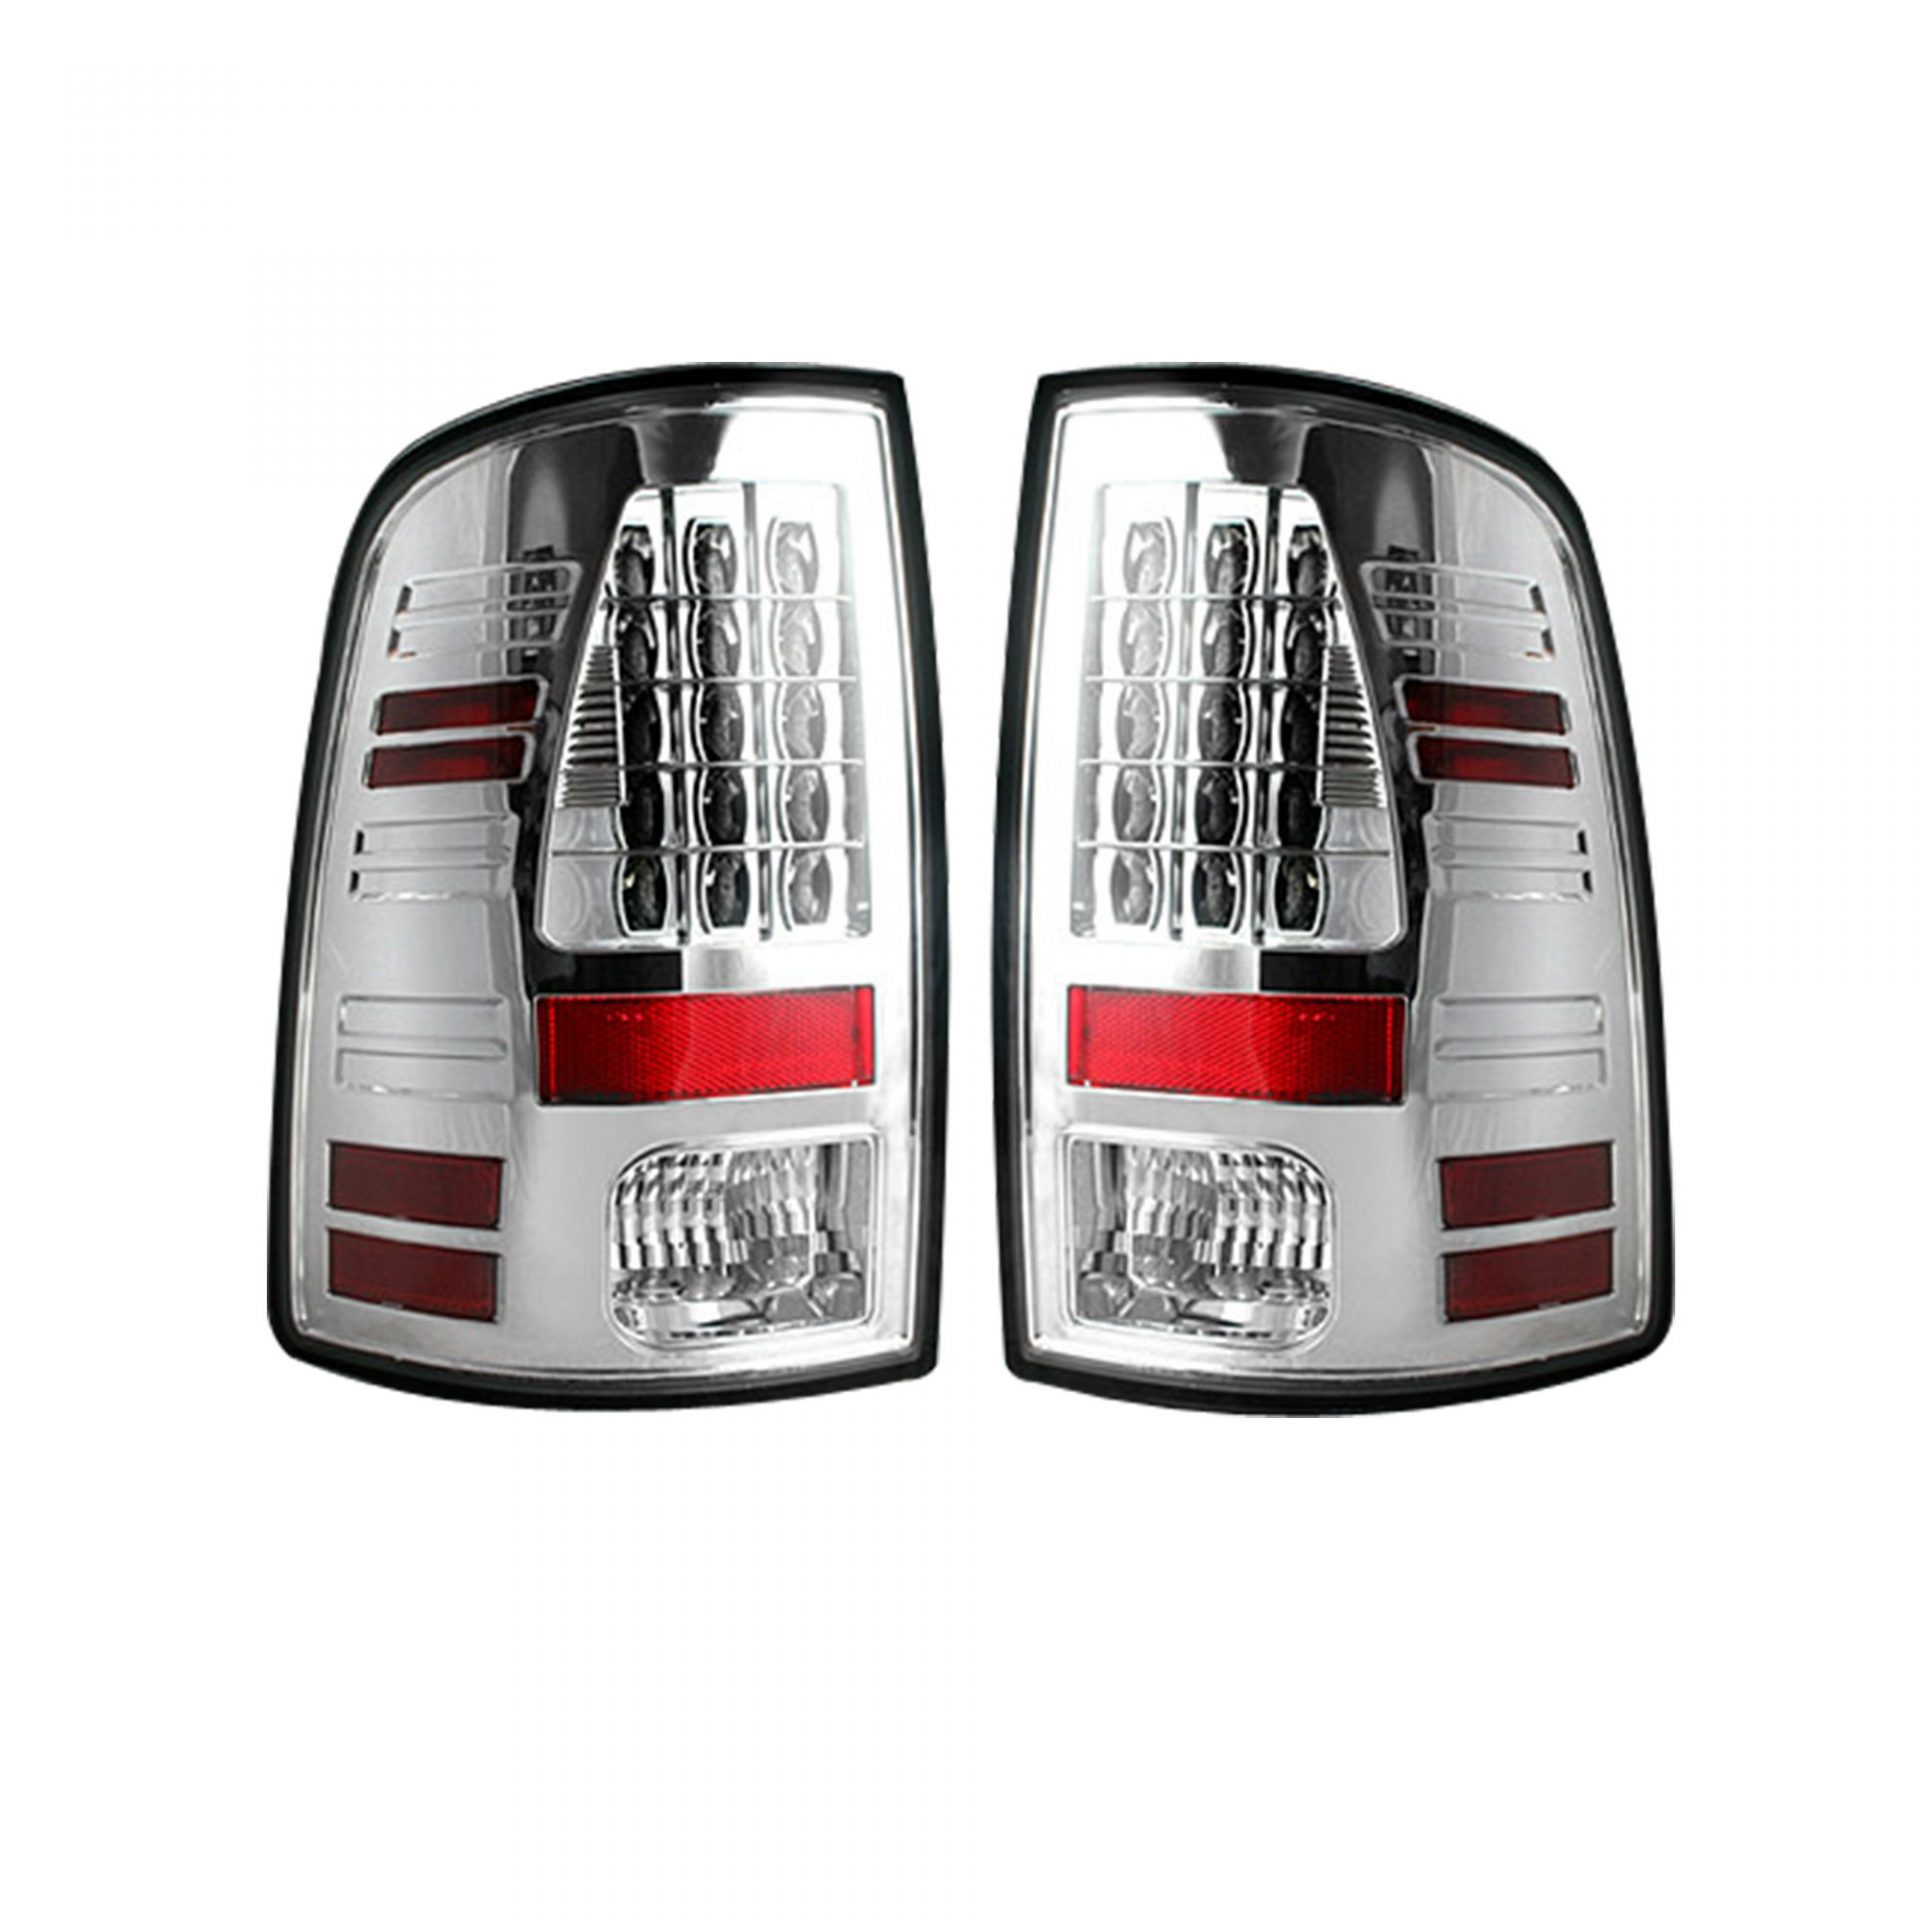 Recon 264169cl Dodge 09 14 Ram 1500 10 2500 3500 Led Tail Lights Replaces Factory Oem Halogen Clear Lens